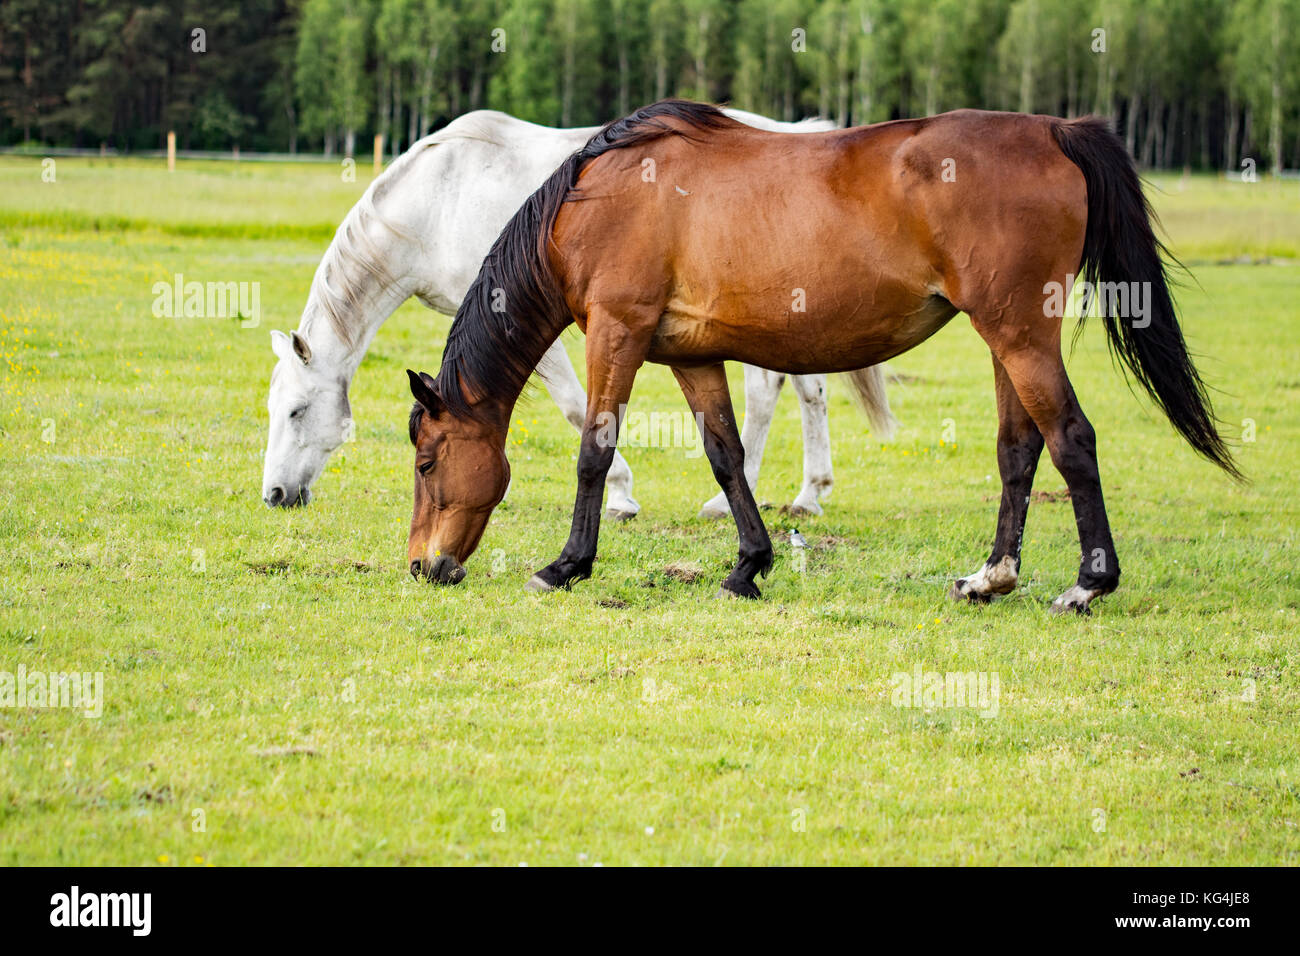 Bay horse and grey horse grazing on a meadow - Stock Image